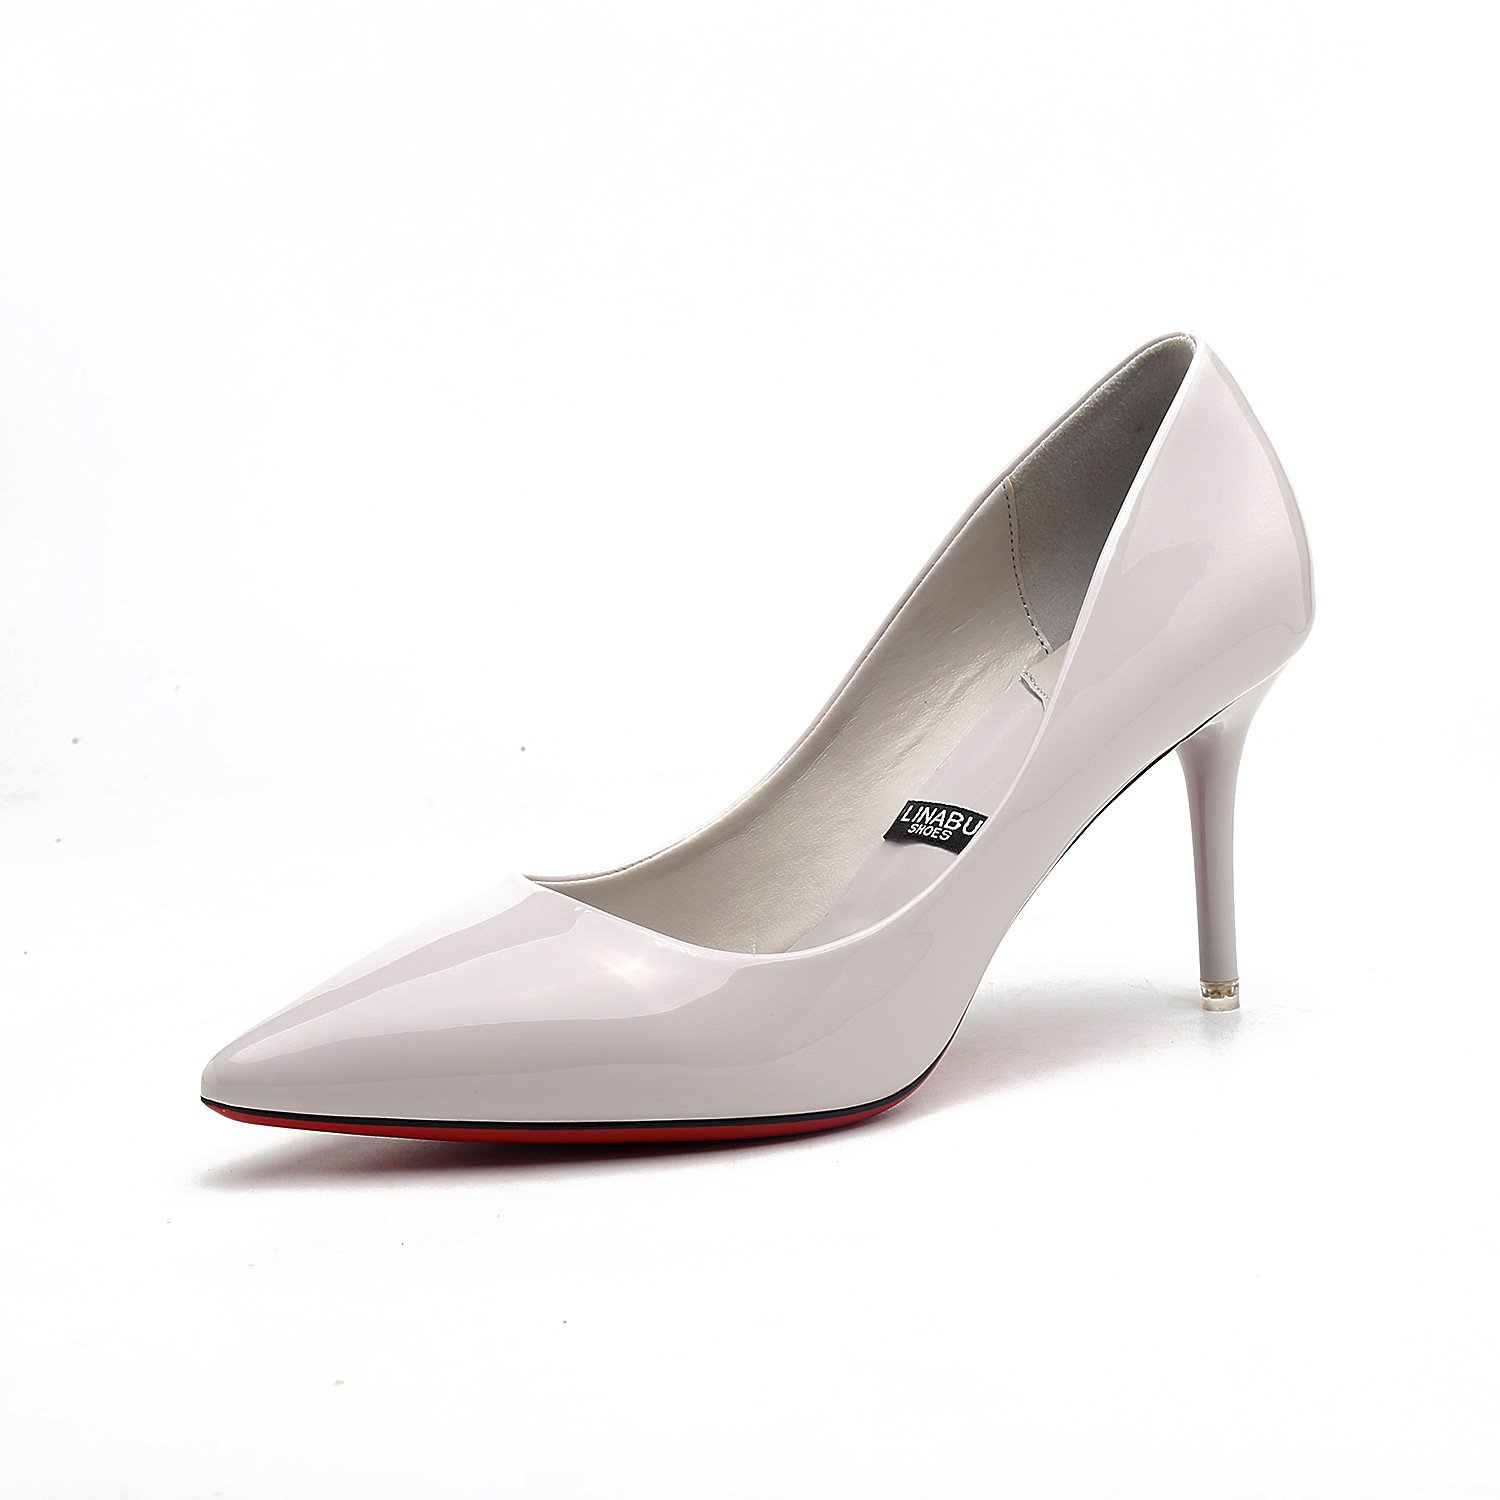 Tip of the high-heel shoes fine with women's singles shoes red wedding shoes, gray 39 by YLSZ-High heels (Image #1)